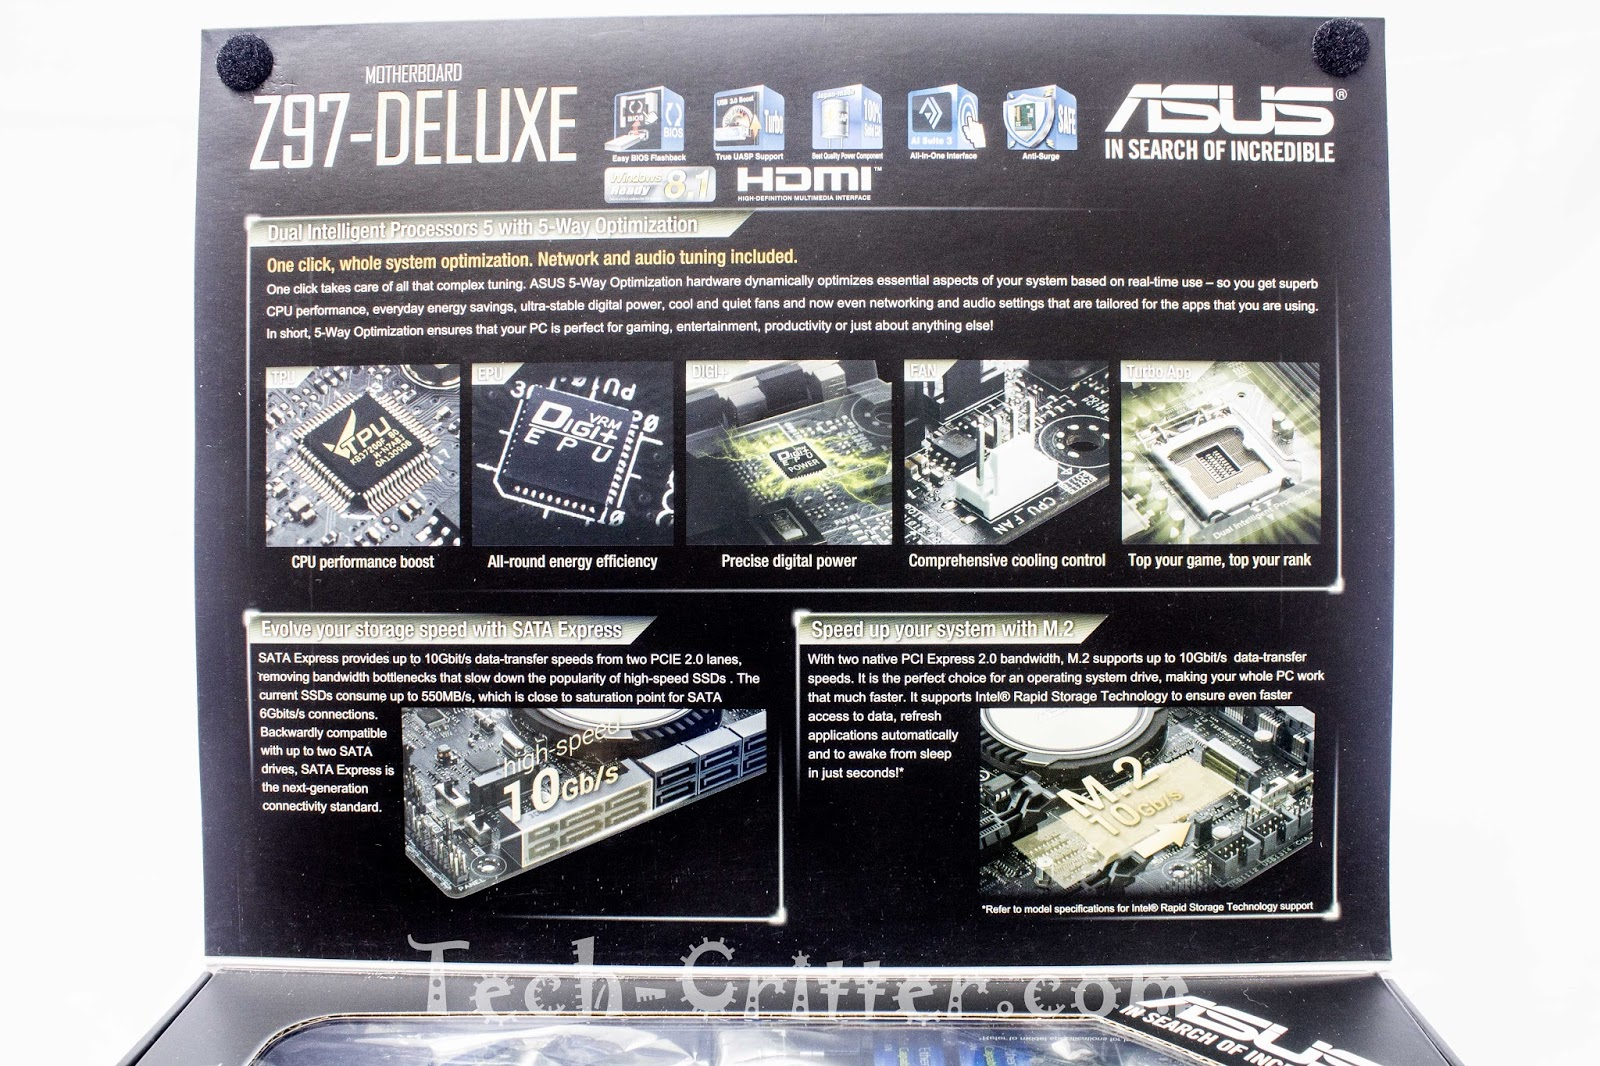 Unboxing & Review - ASUS Z97-Deluxe 159